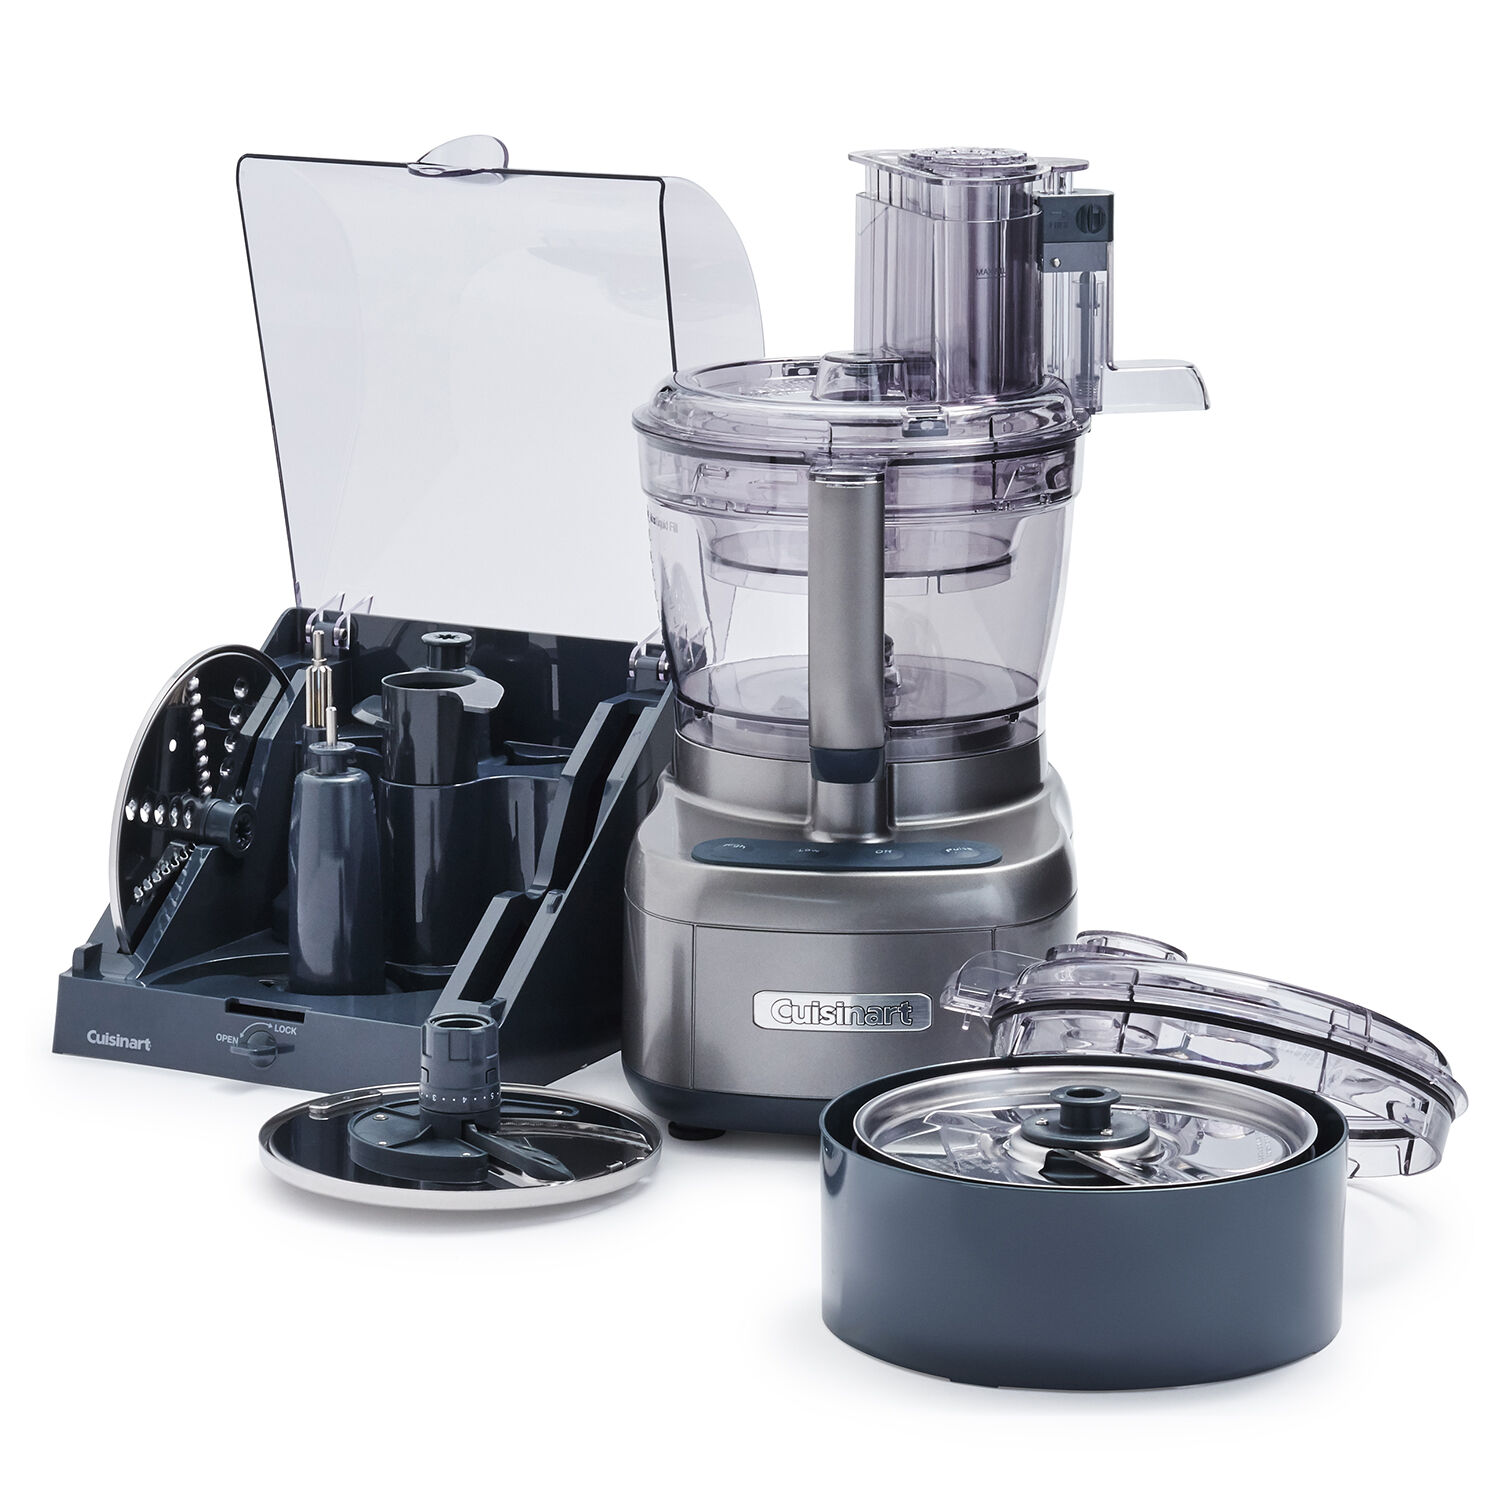 Cuisinart Food Processor Elemental 13-Cup Silver Stainless Steel and Dicing Kit